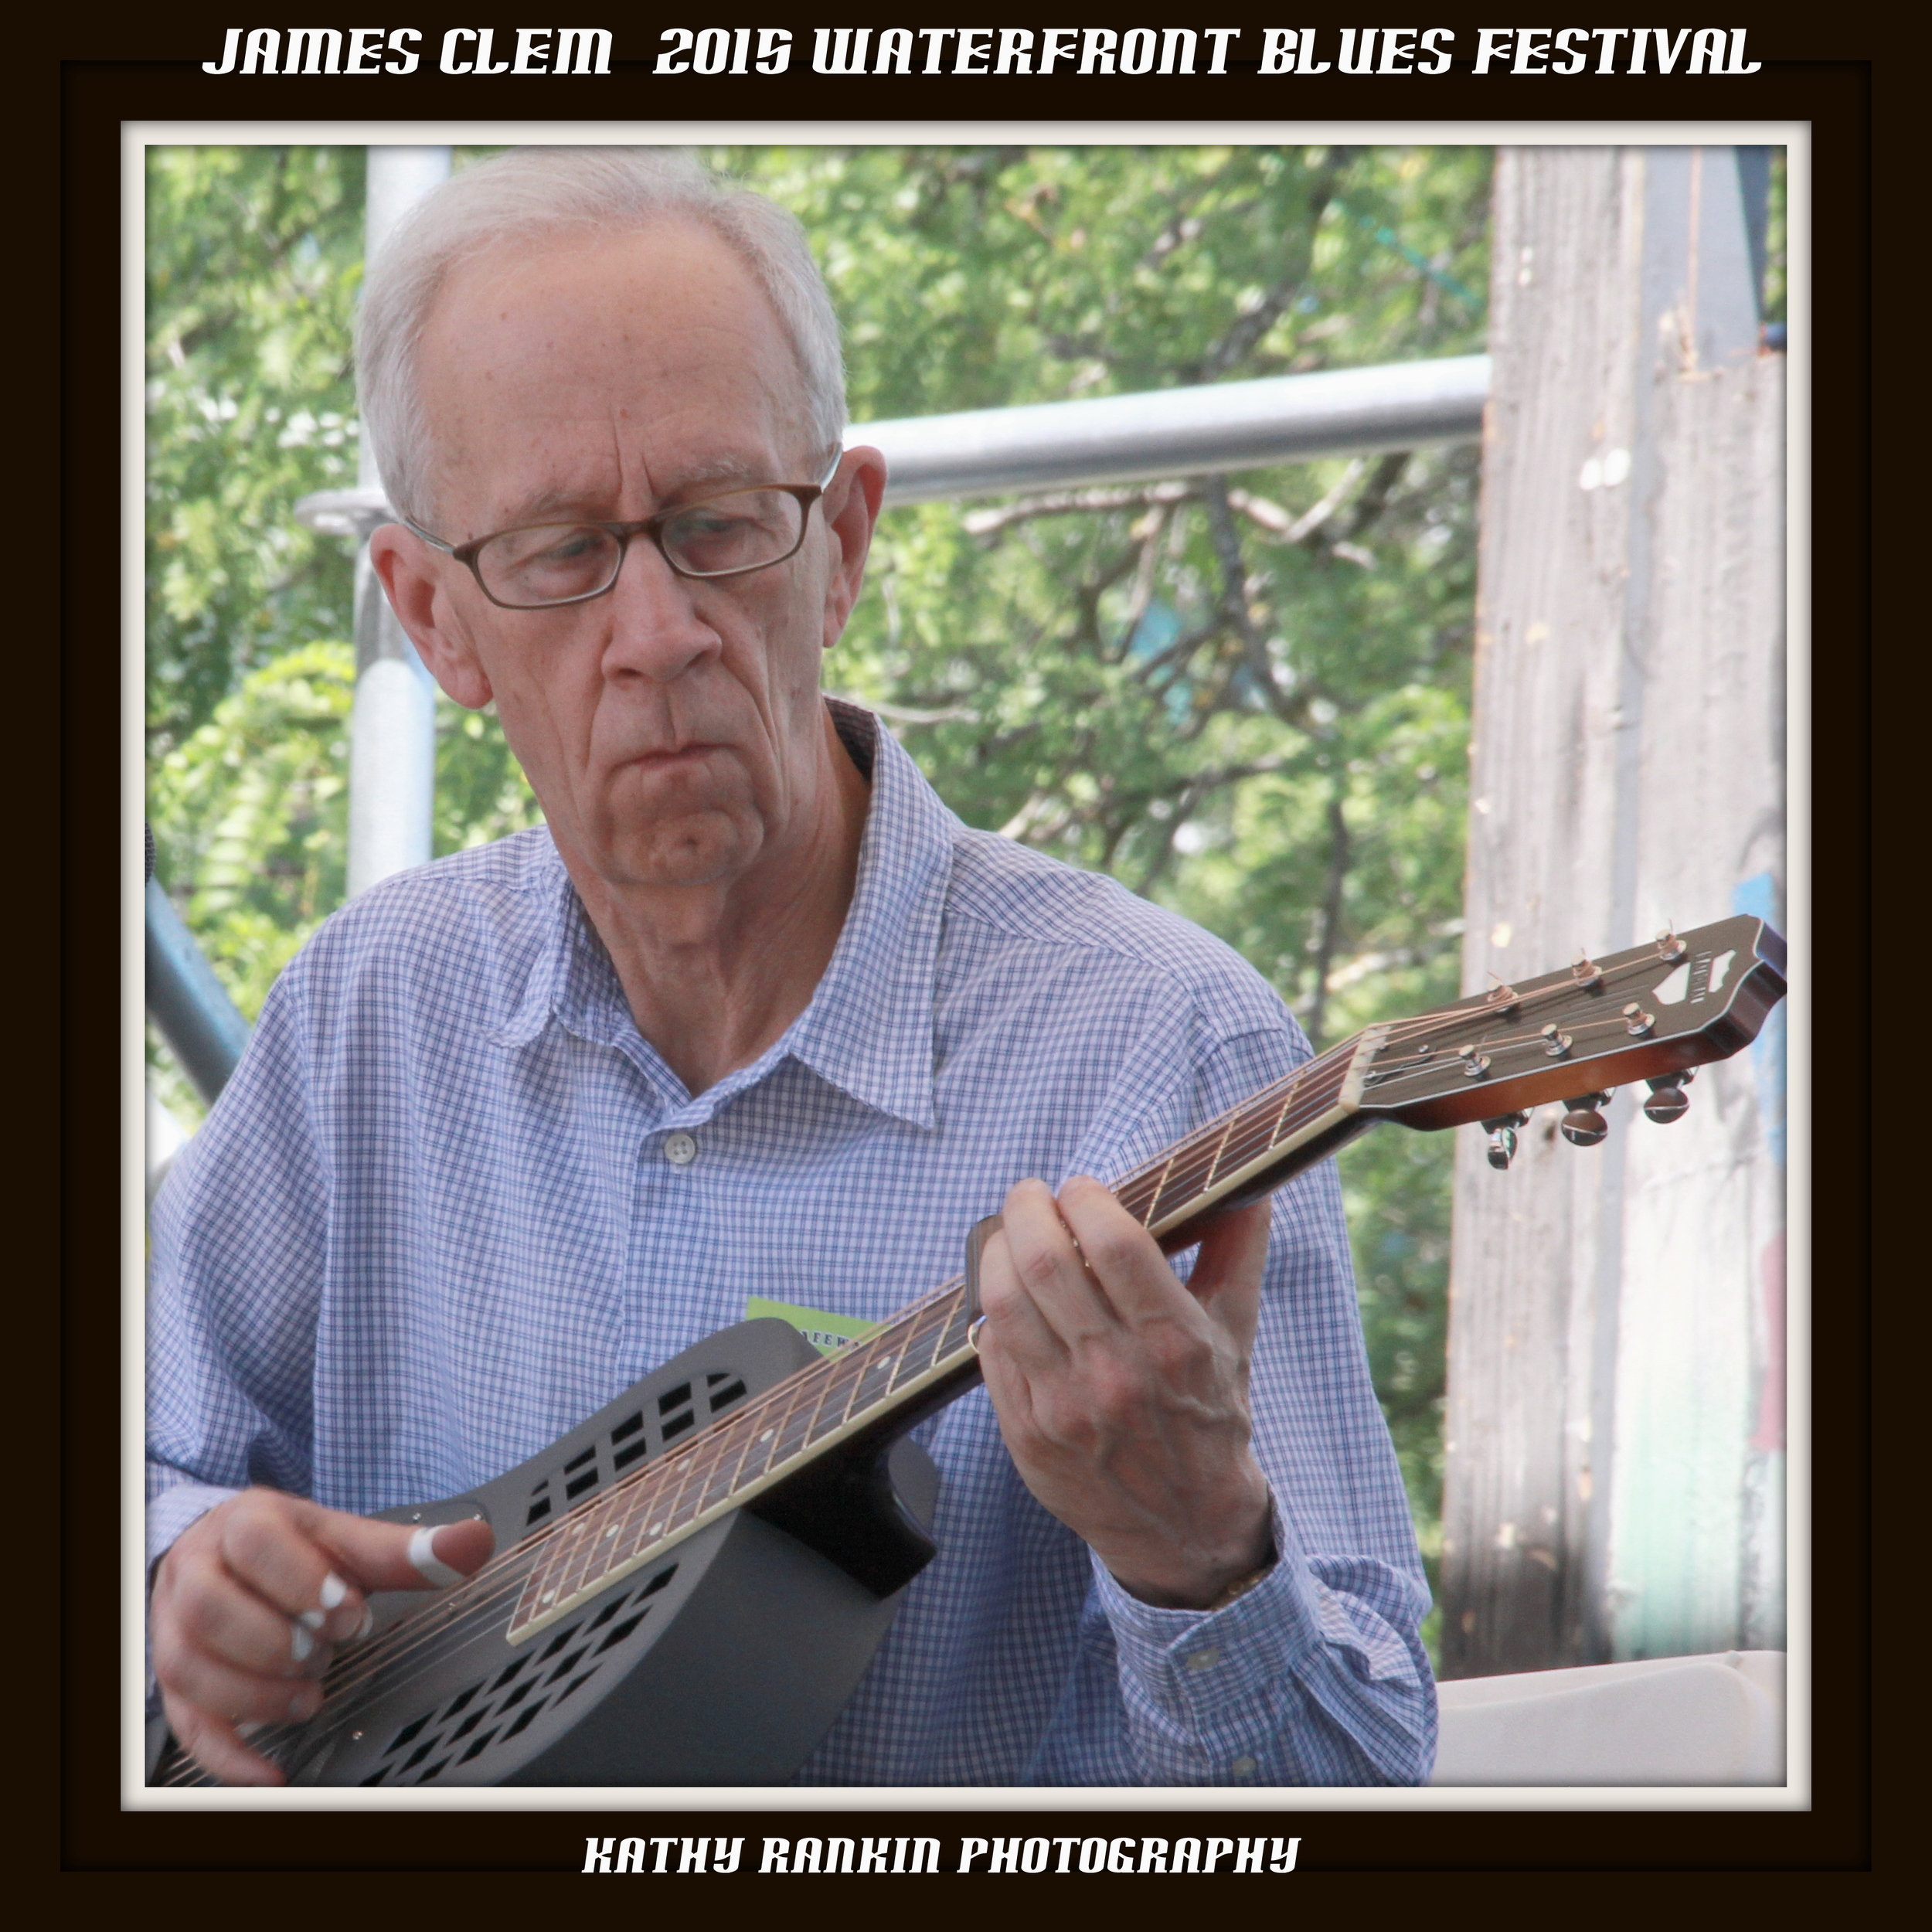 Playing the Waterfront Blues Festival in July, 2015. This is the largest blues festival west of the Mississippi.